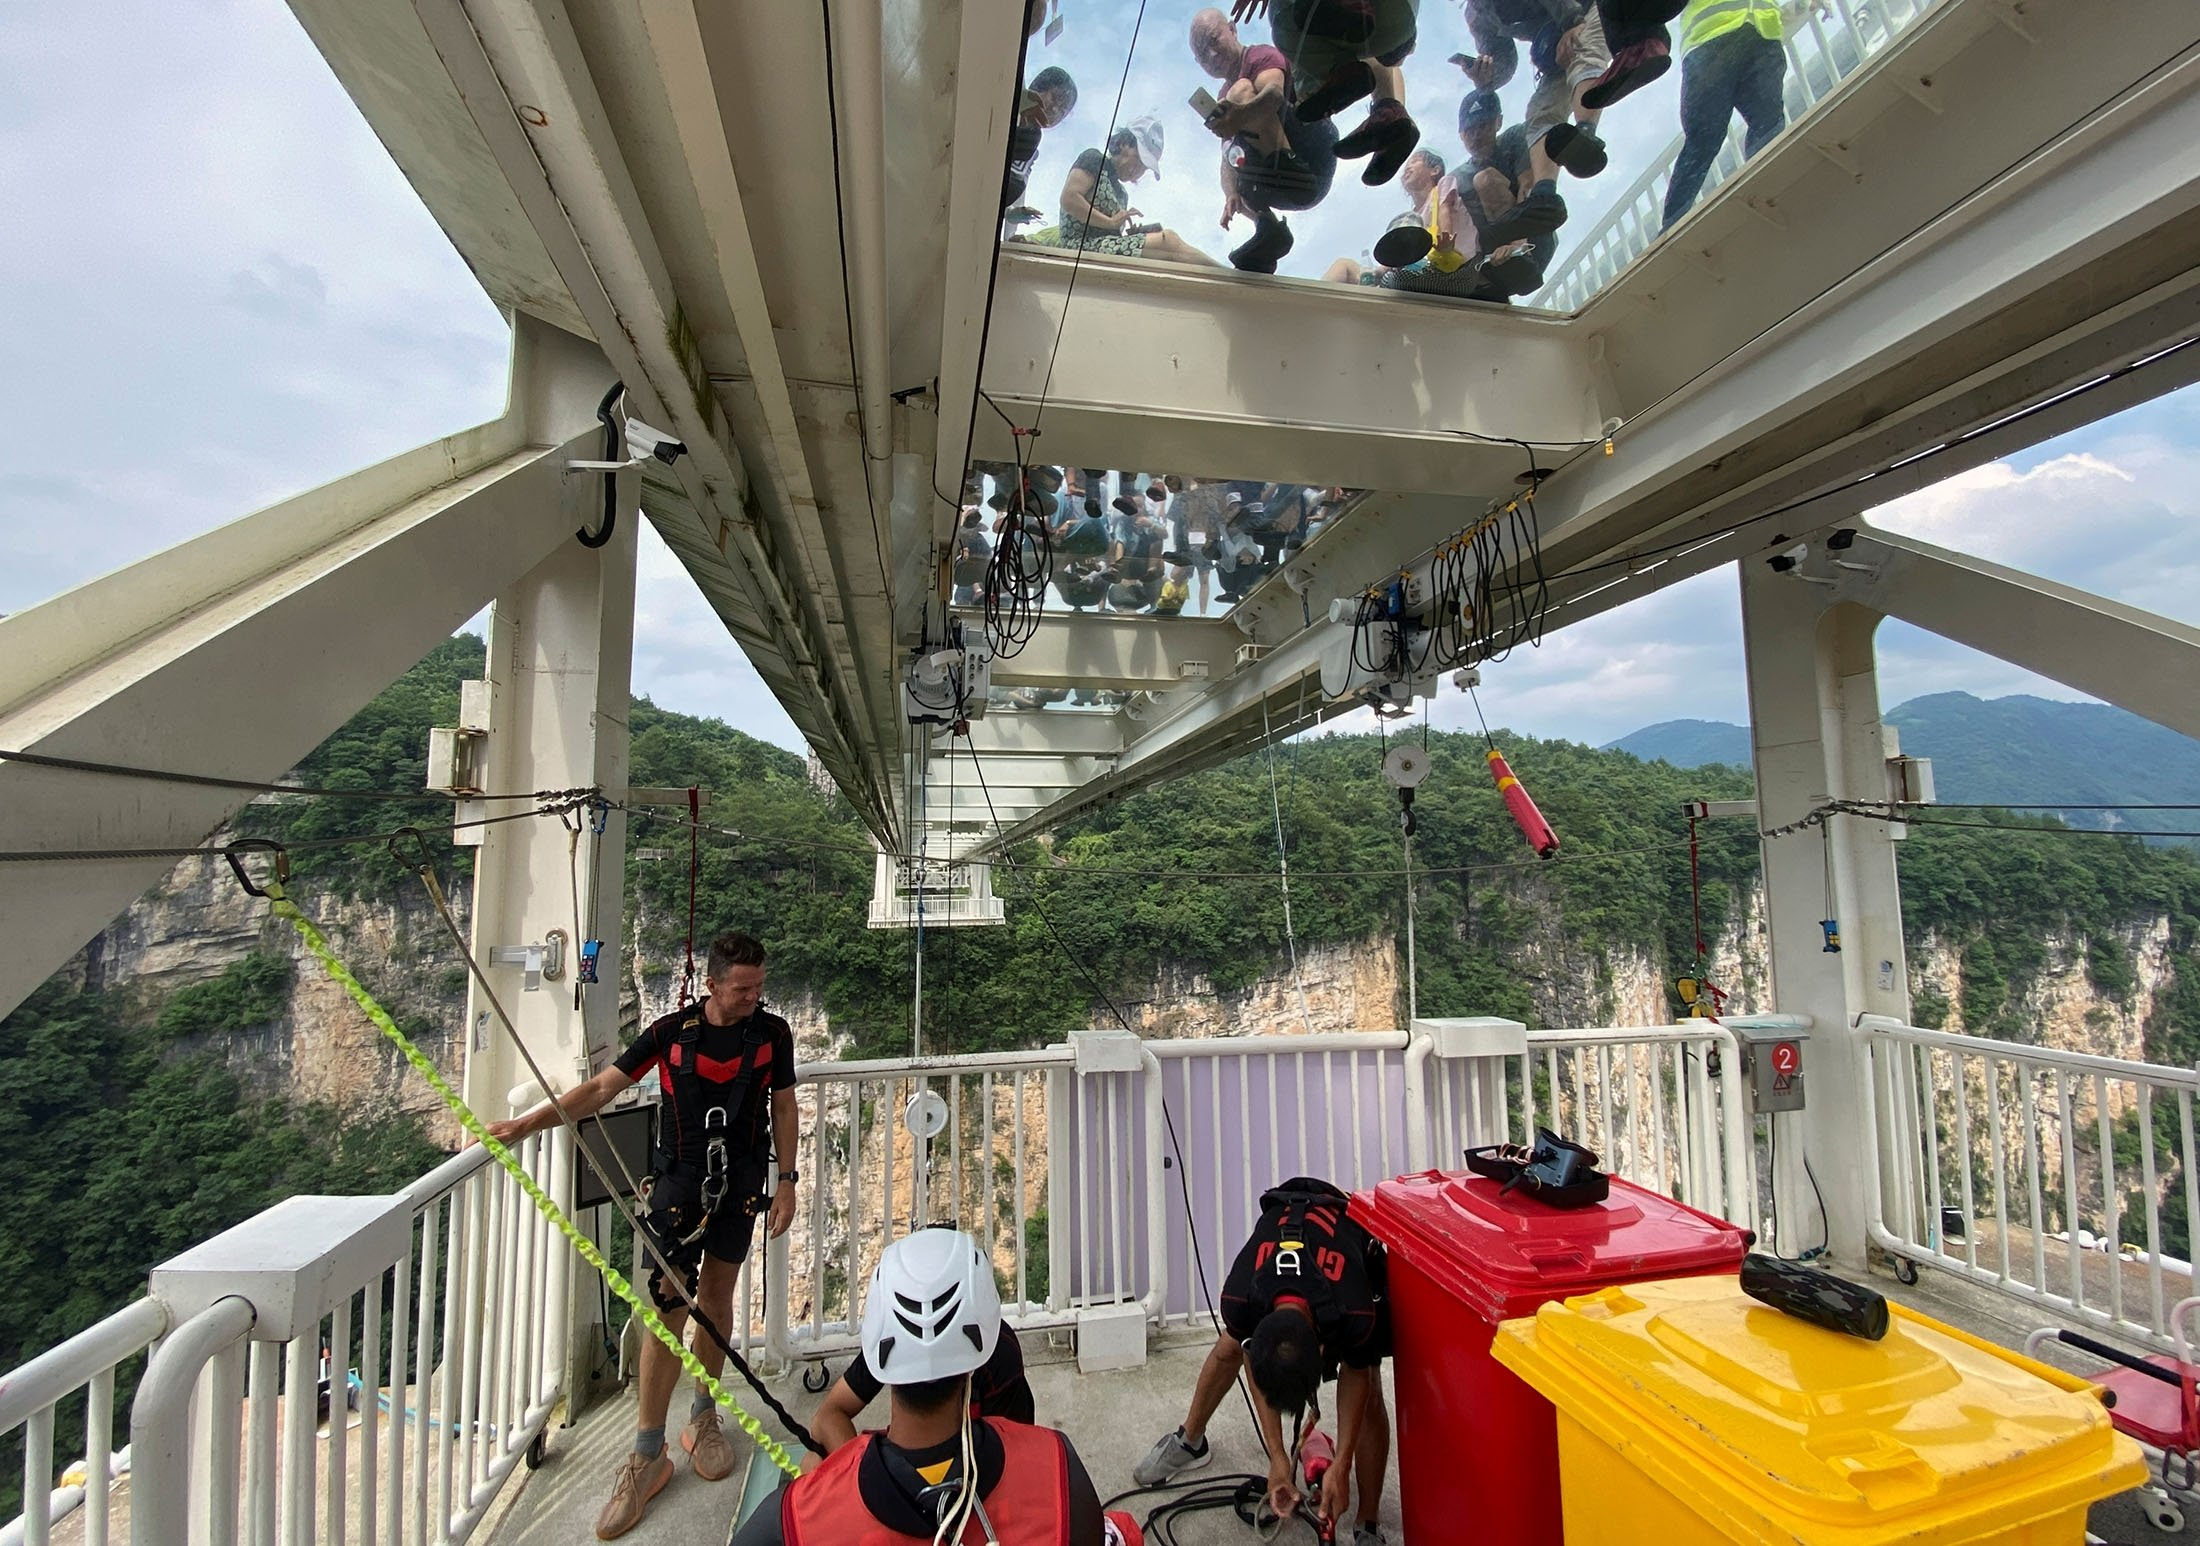 Visitors peek through a 430-meter (1,410-foot) long glass-bottomed bridge as Jonni Deaker, site manager for Beau Ratalic Bungy Jumping, helps a participant to get ready for a bungee jump from a 260-meter high platform over the Zhangjiajie Grand Canyon in Zhangjiajie, Hunan province, China, July 11, 2021. (Reuters Photo)